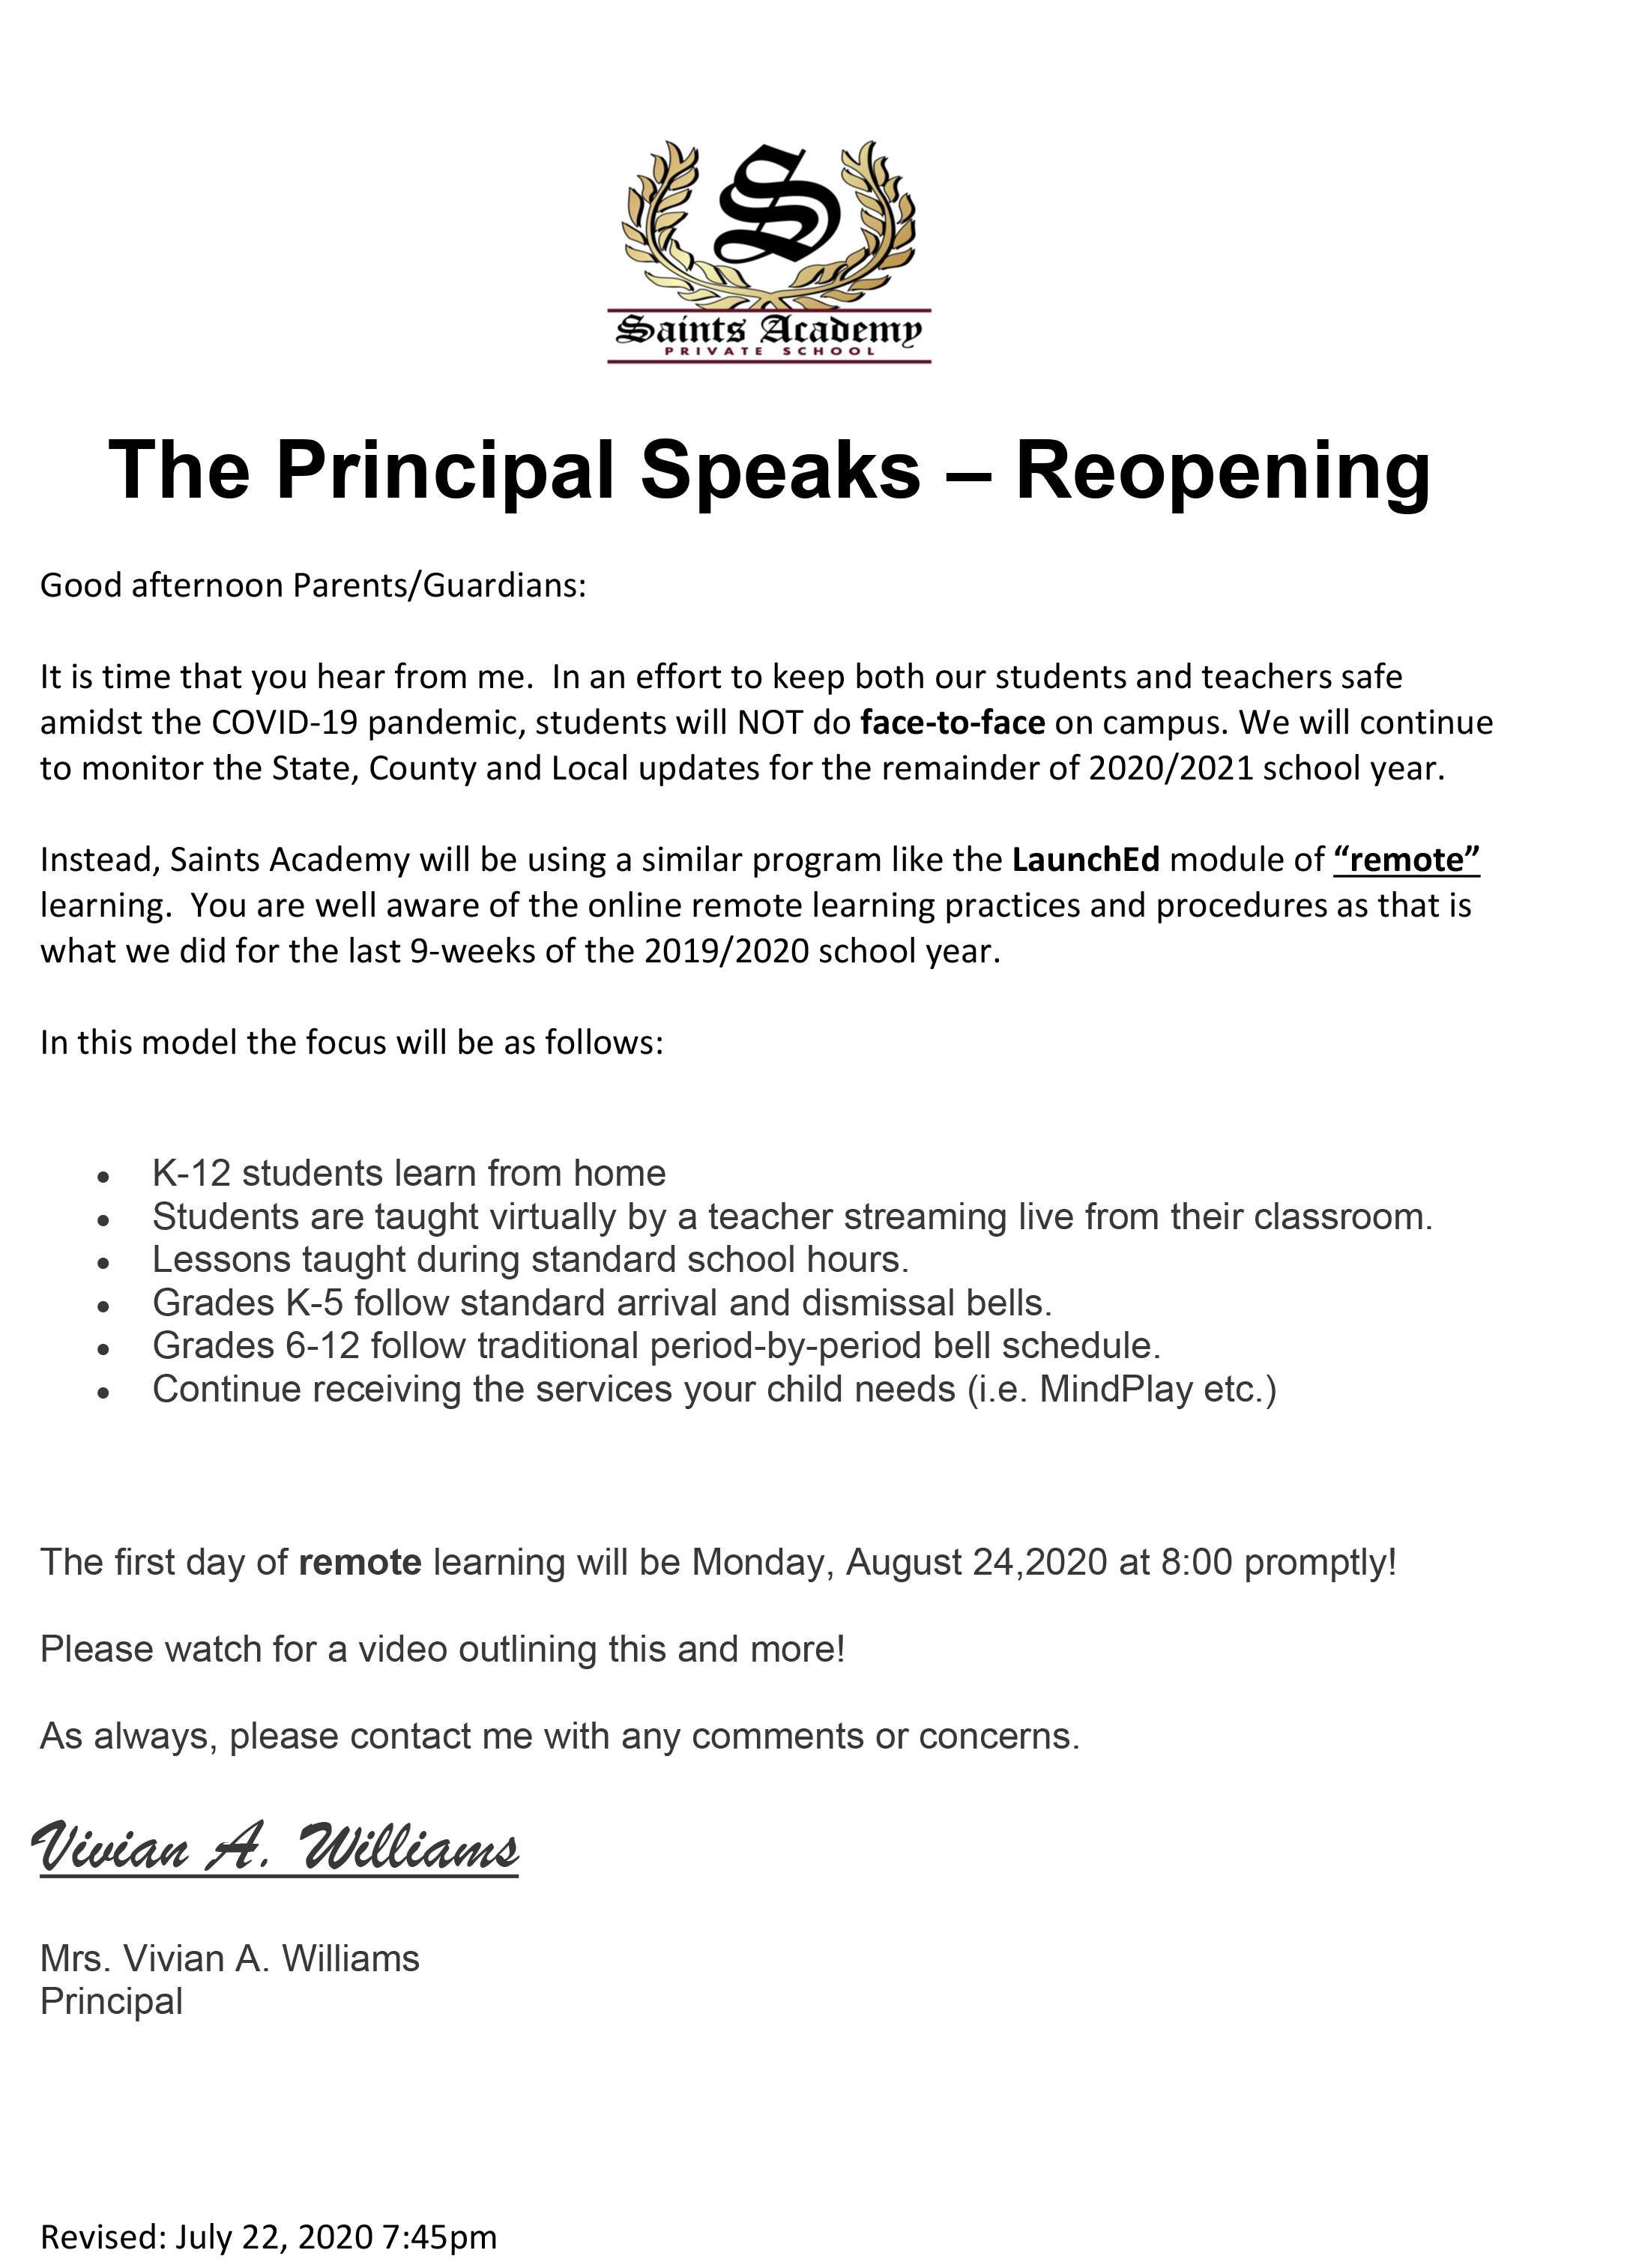 Microsoft Word - The Principal Speaks-reopening 20